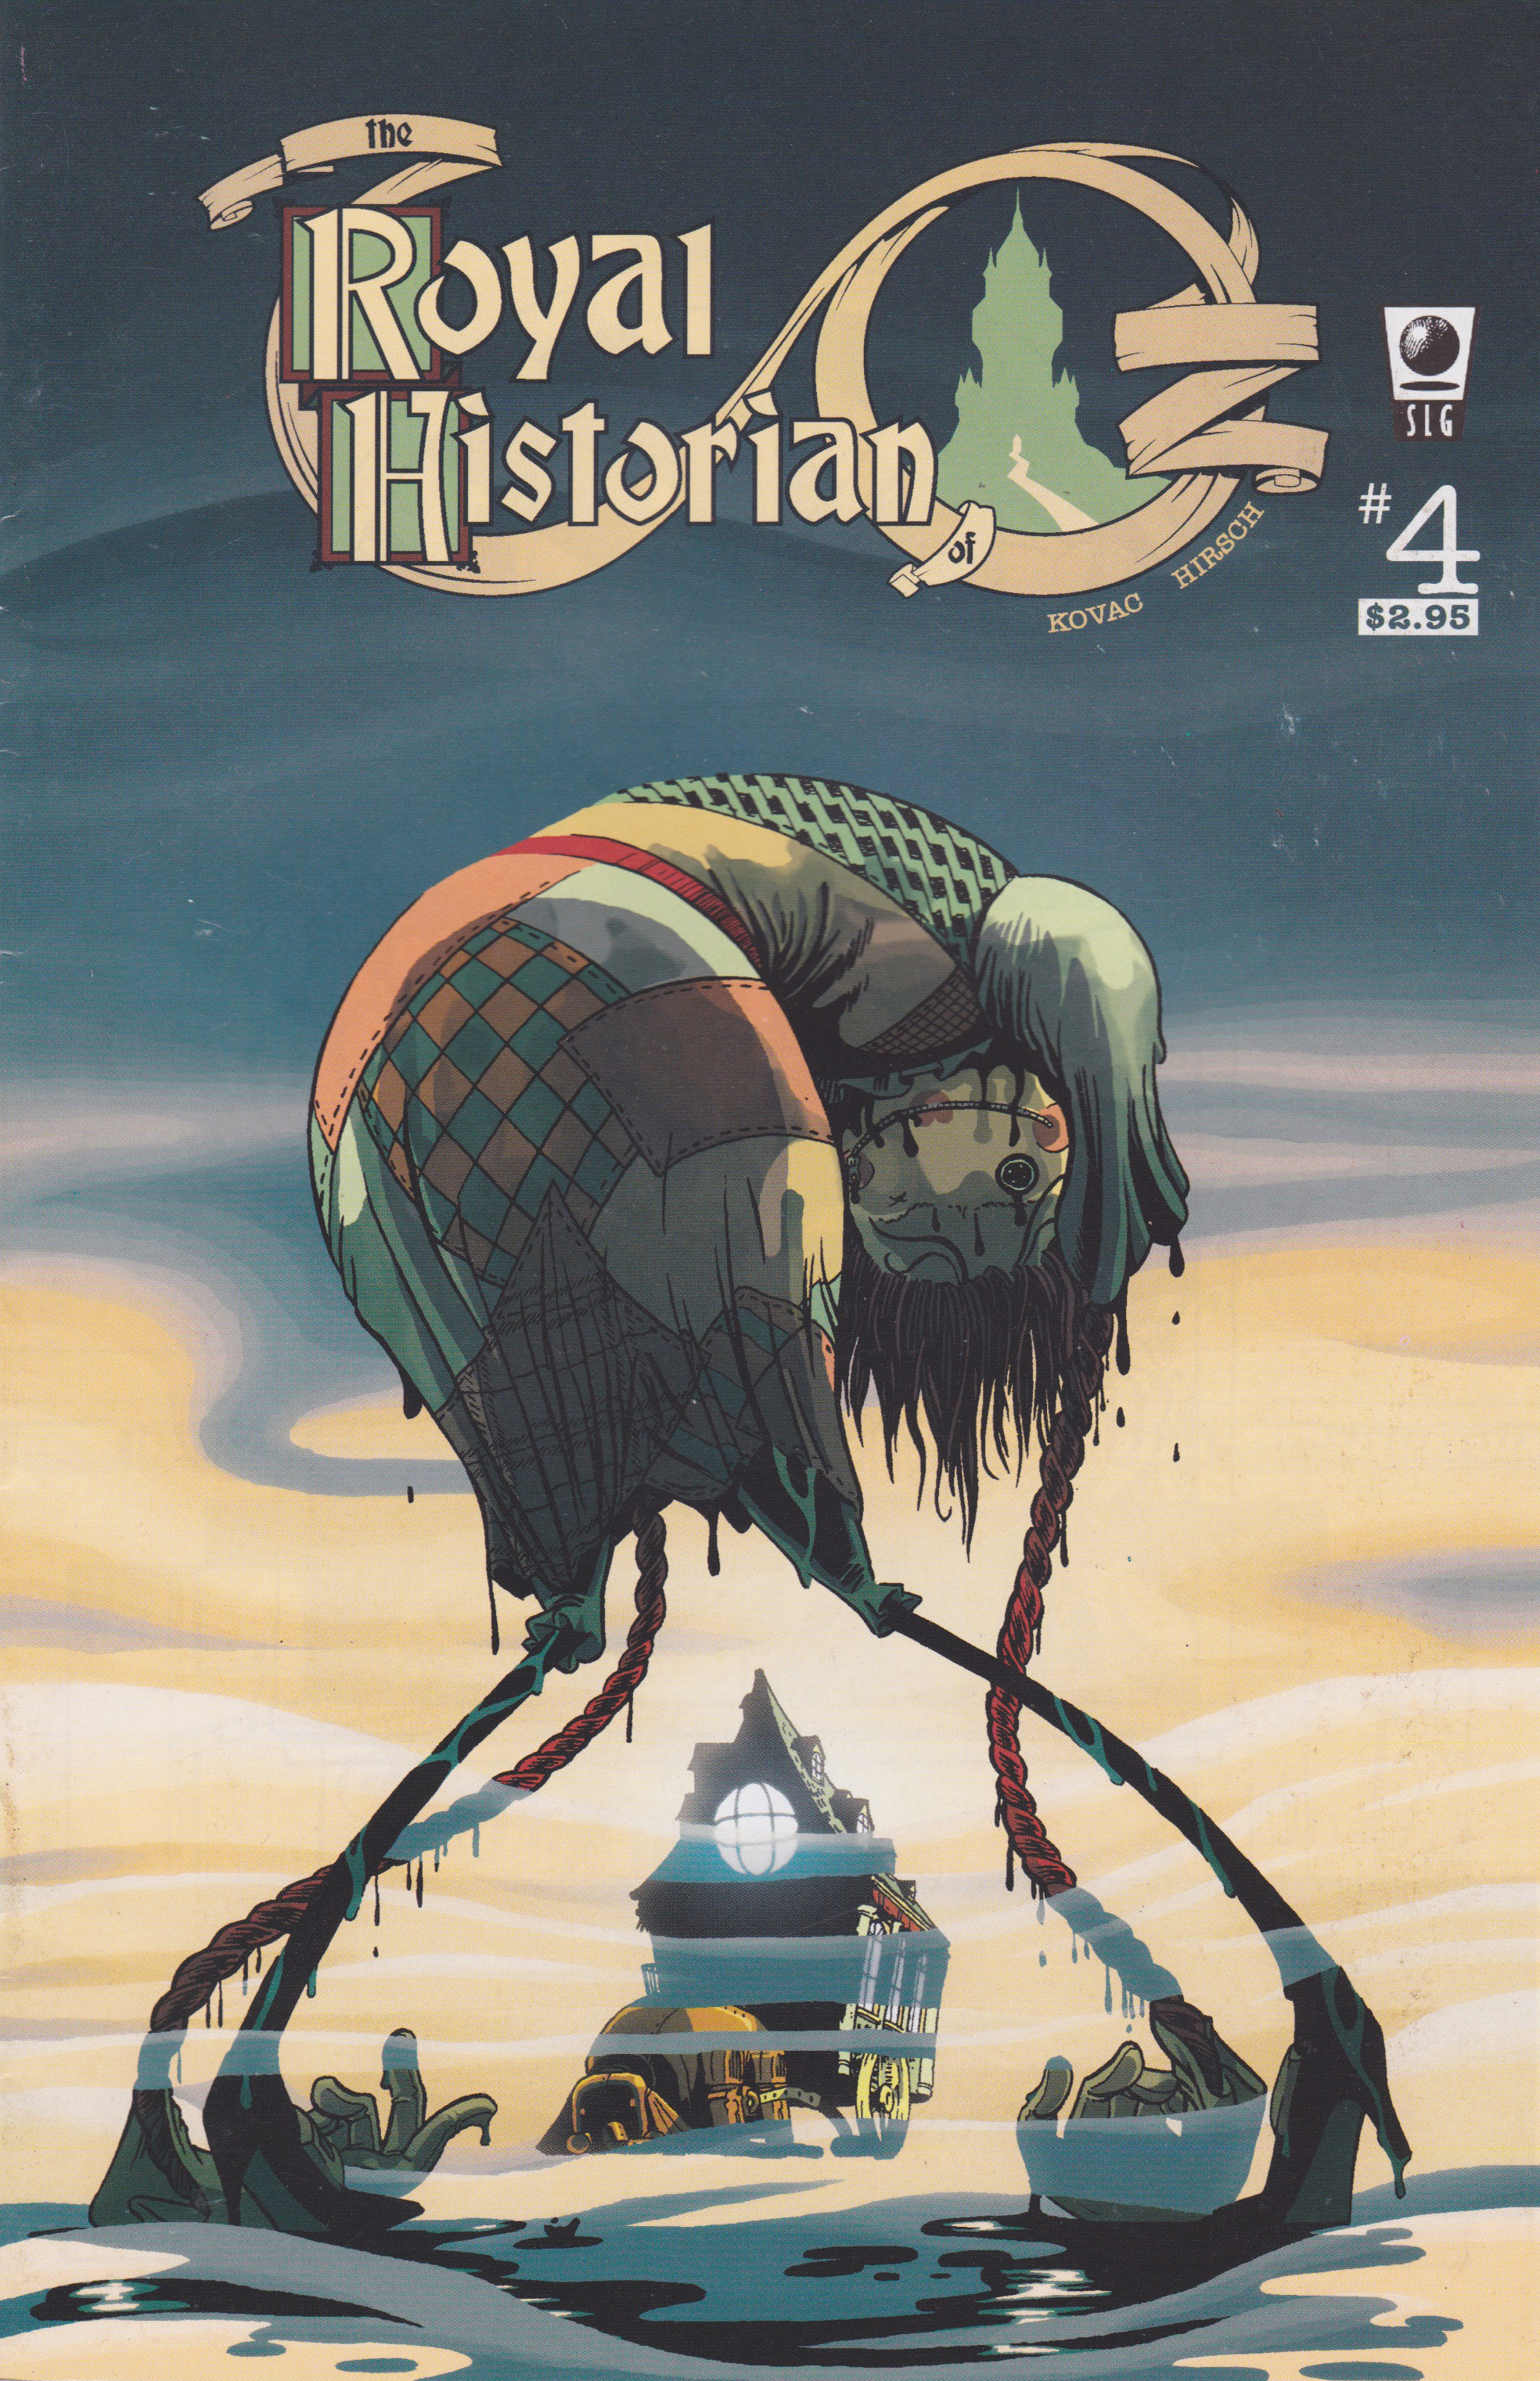 Royal Historian of oz issue #4